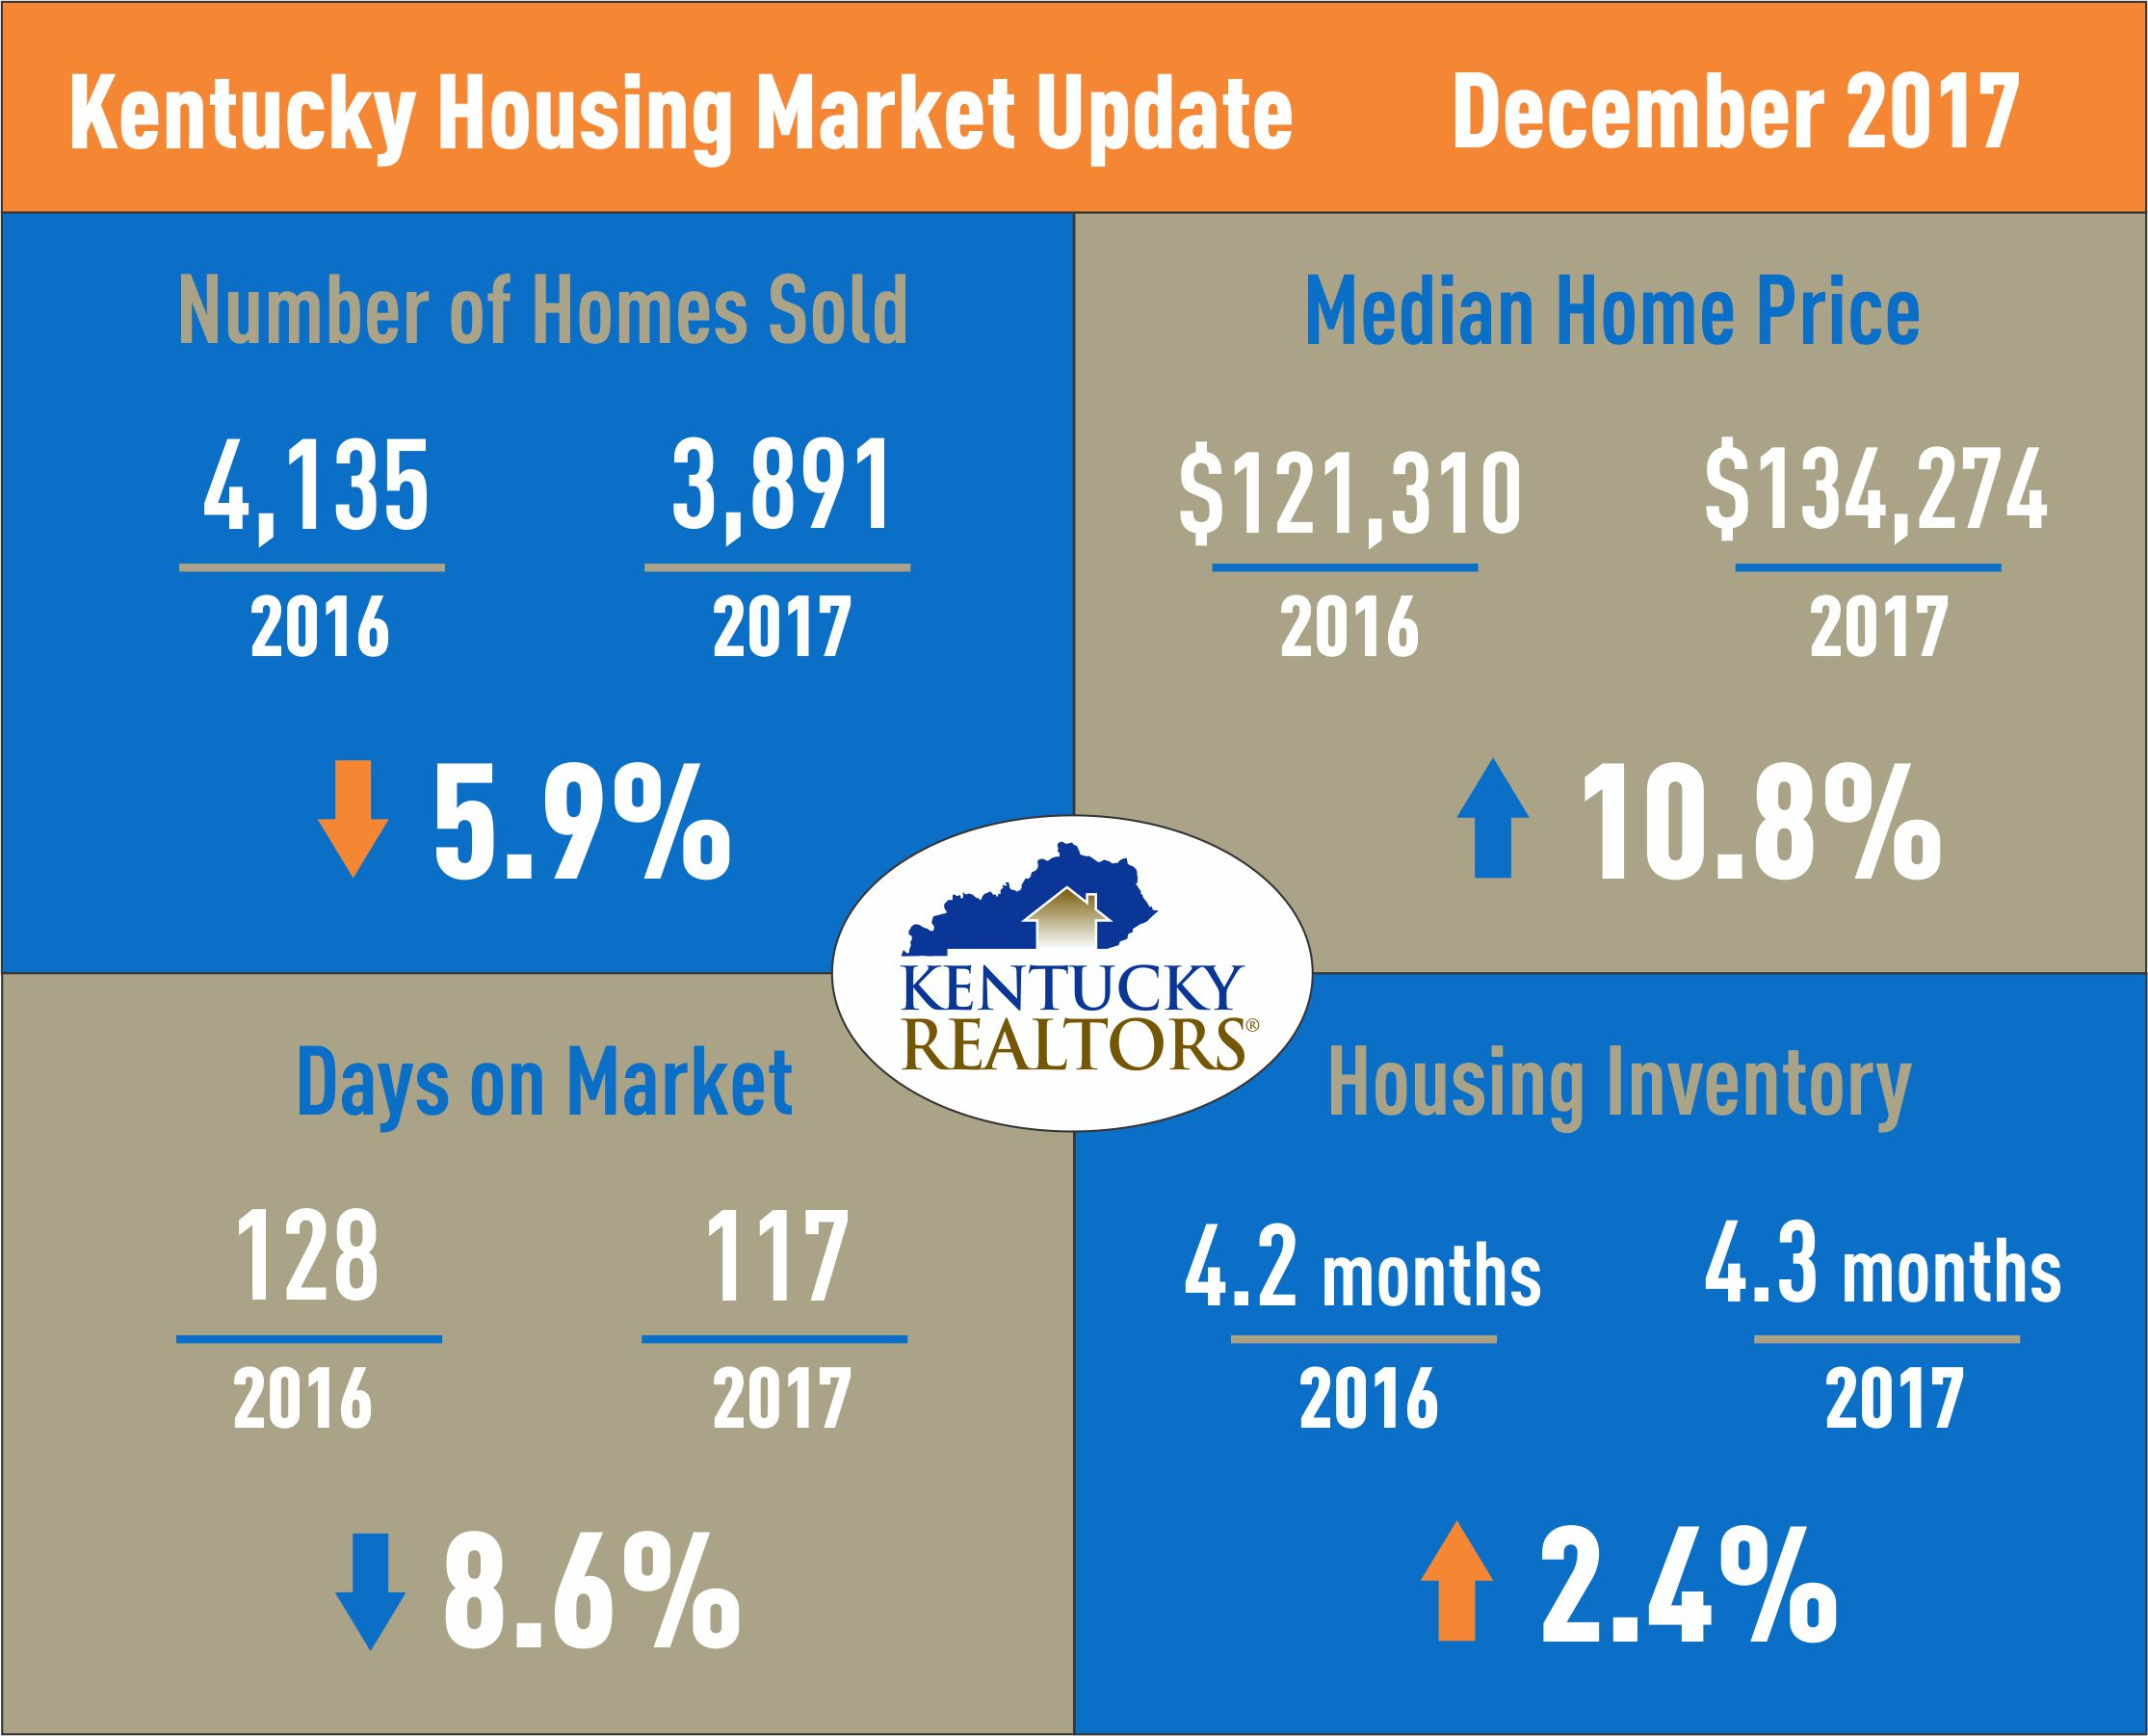 Kentucky Housing Market Update Dec 2017